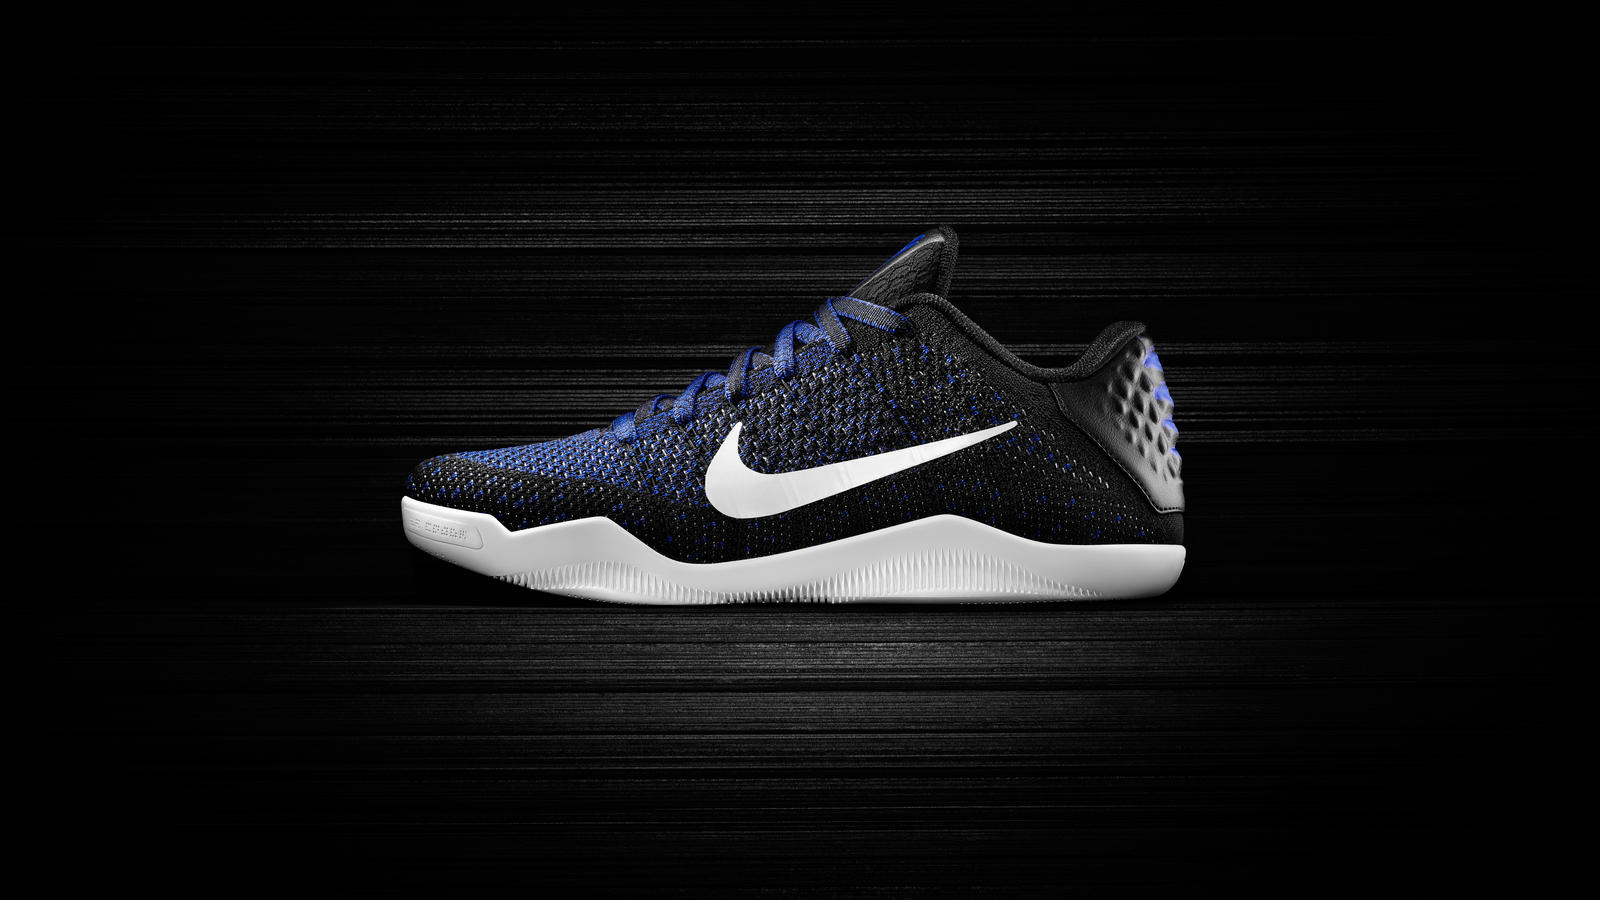 quality design 3e047 0f89c 16-130 Nike Kobe 822675-014 Profile-02